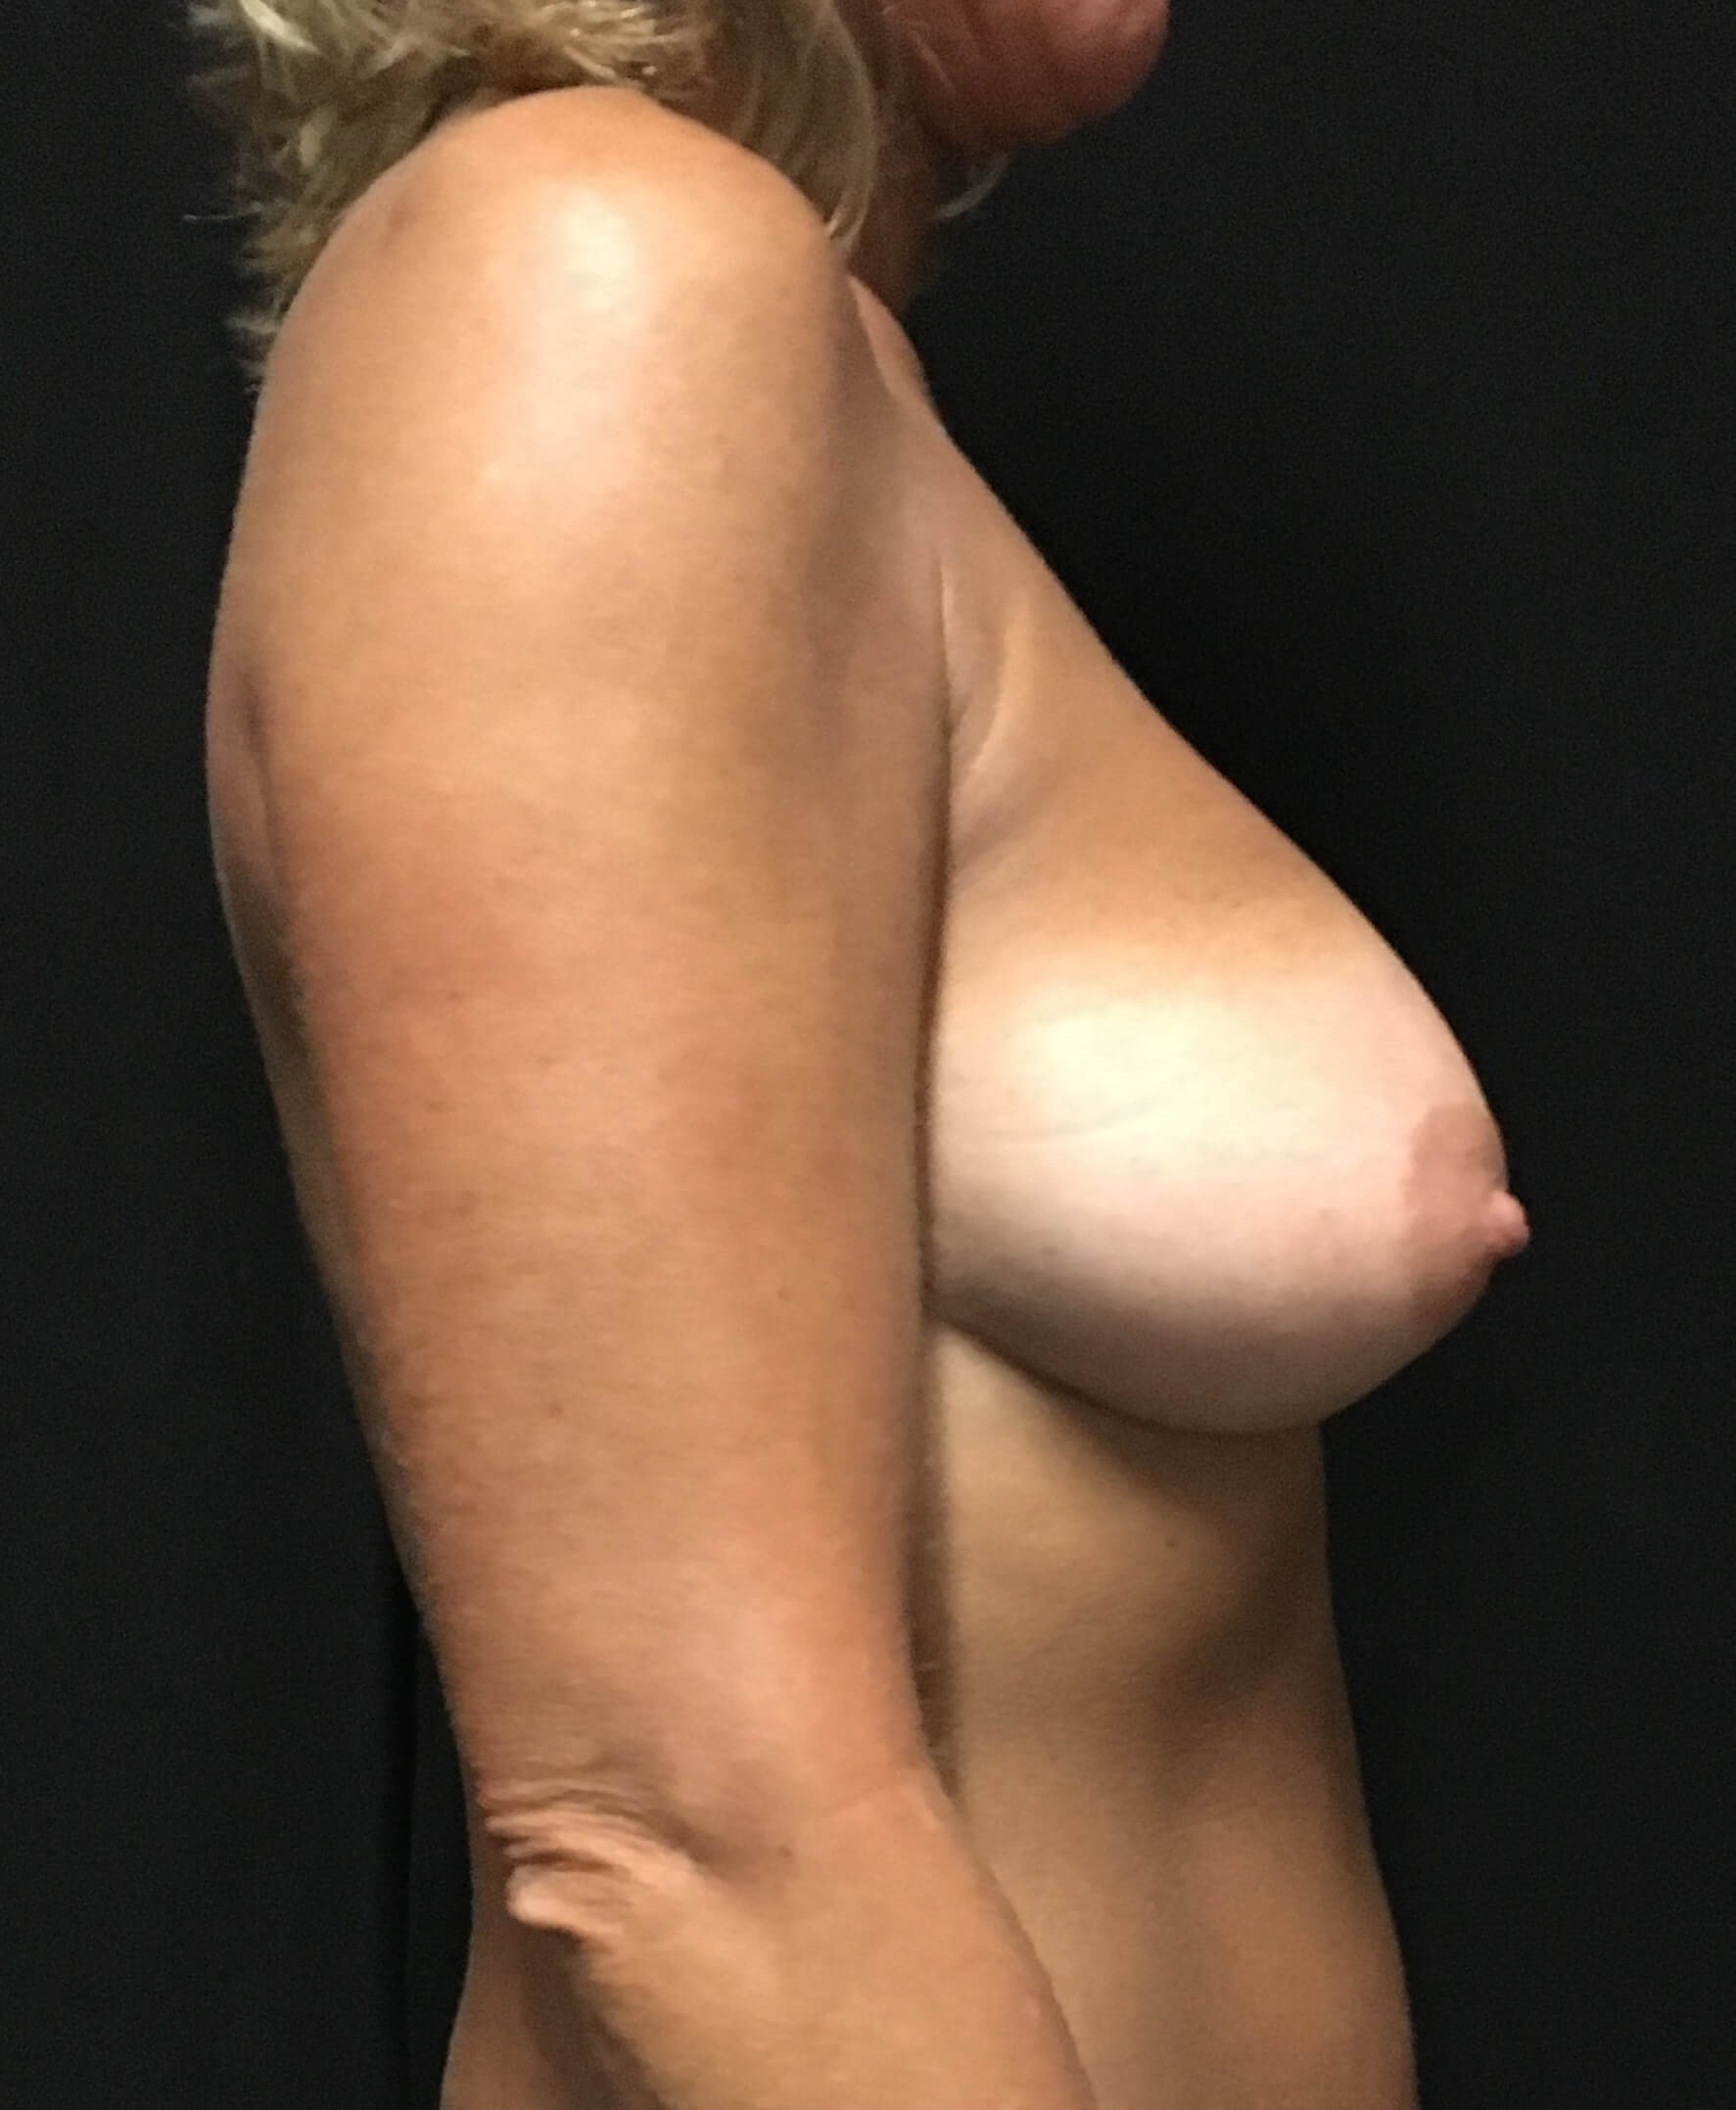 Primary breast augmentaion After